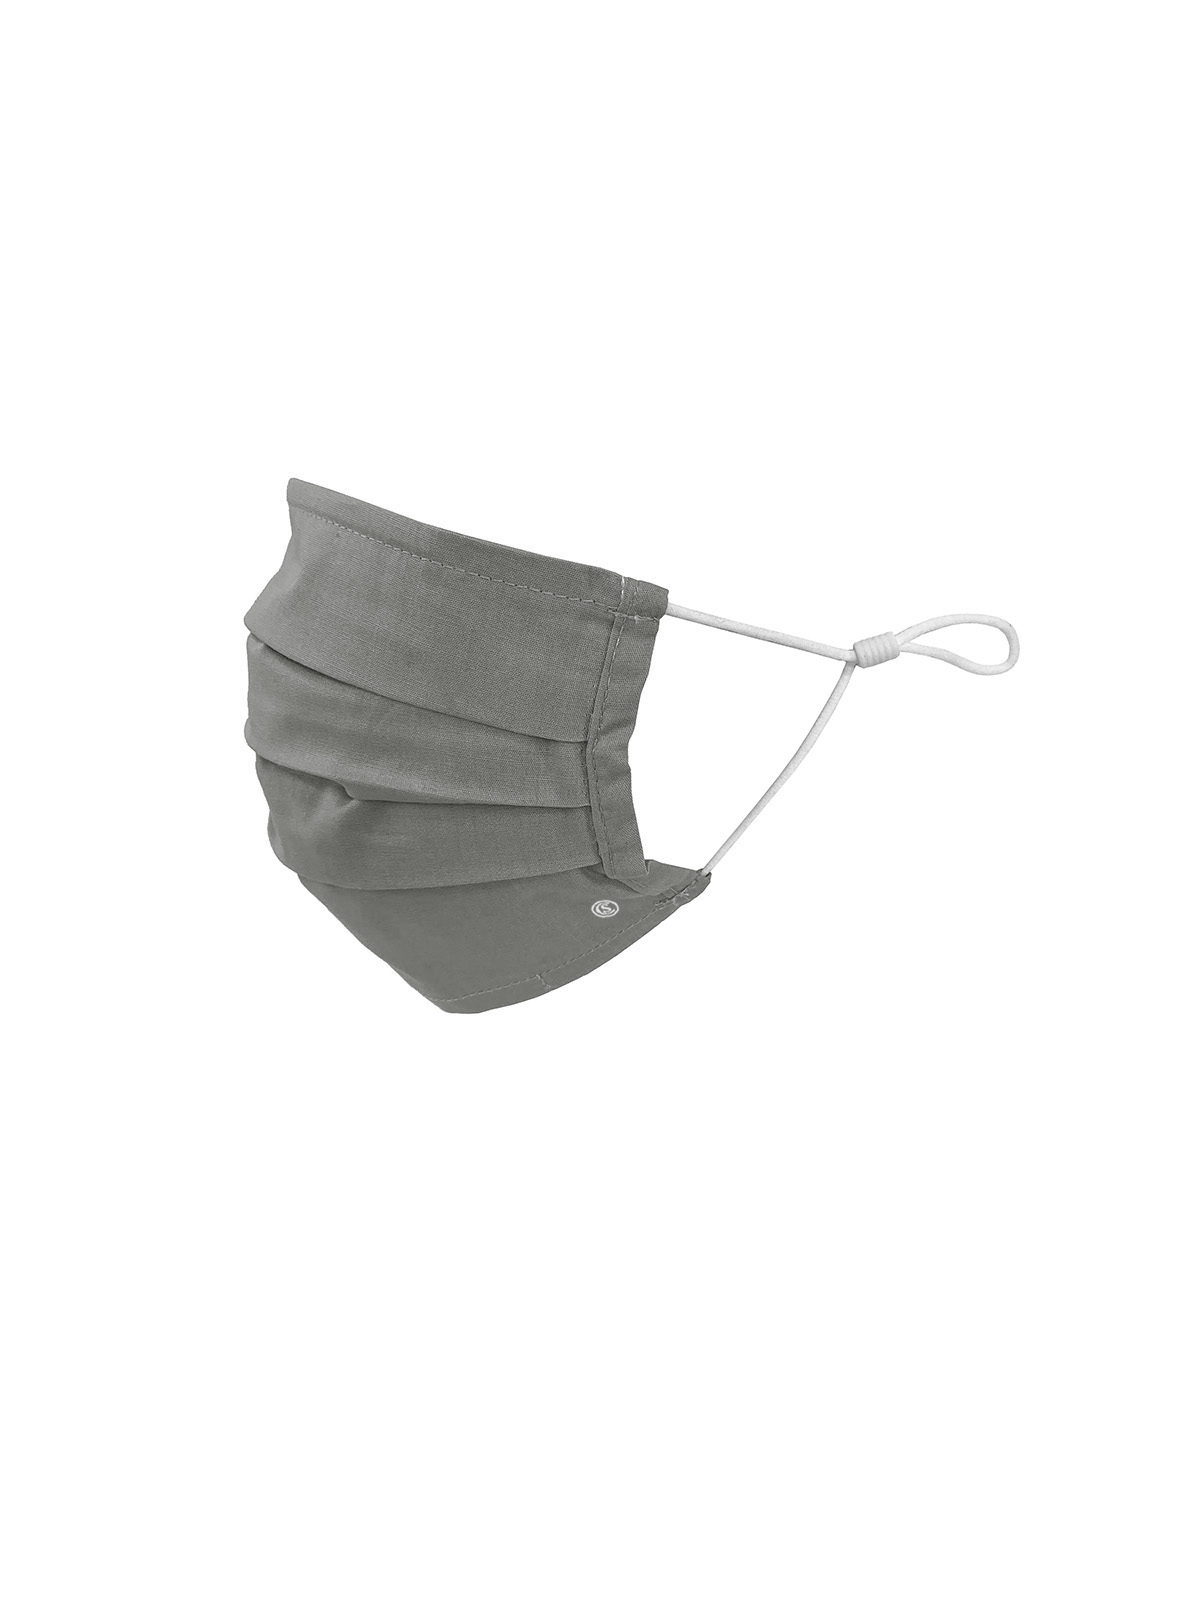 KIDS SOLID GREY PLEATED MASK 6-PACK